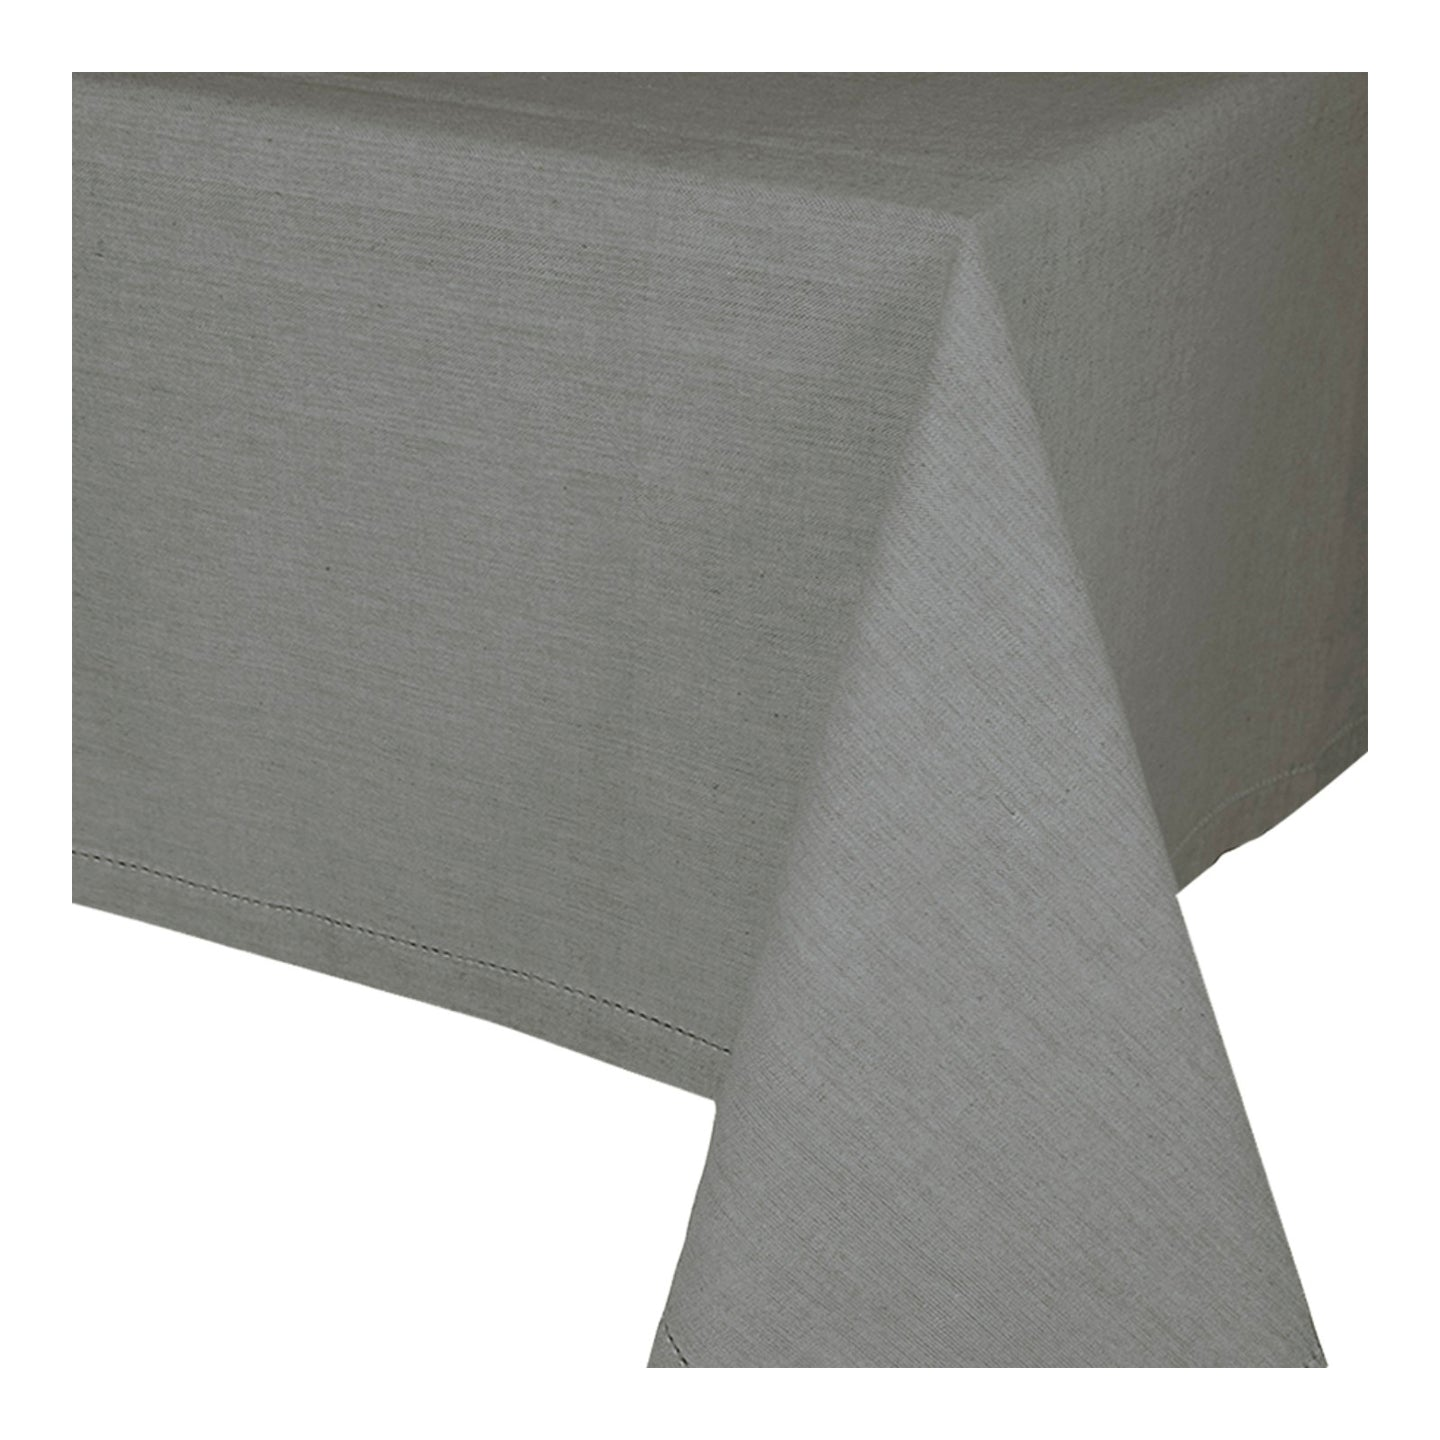 Jetty Charcoal Tablecloth 150x230